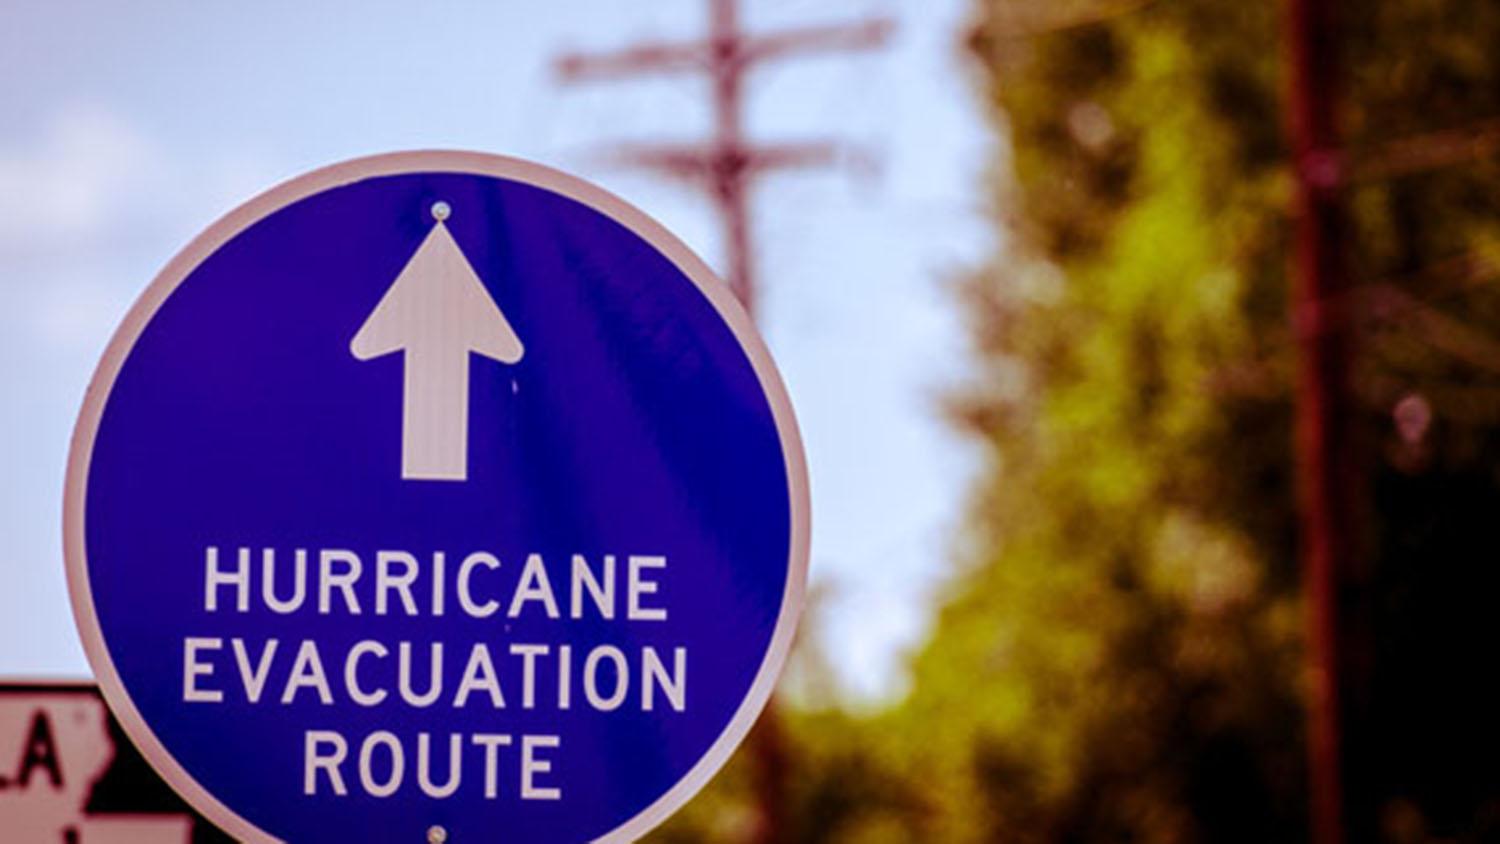 Road sign pointing to hurricane evacuation route